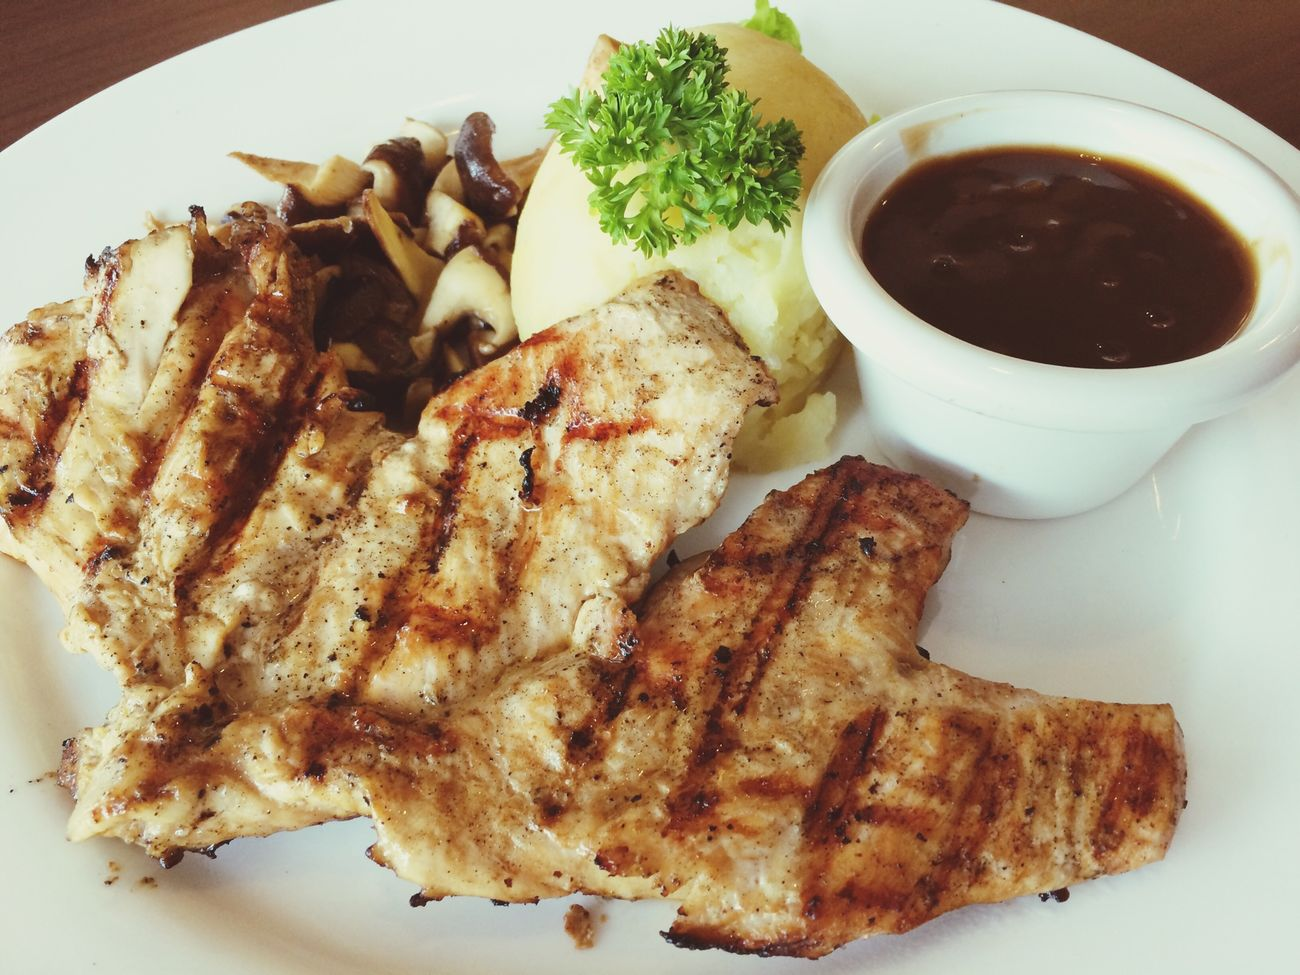 Grilled Chicken Enjoying A Meal Lunch Latepost Twelv 19Sept2015